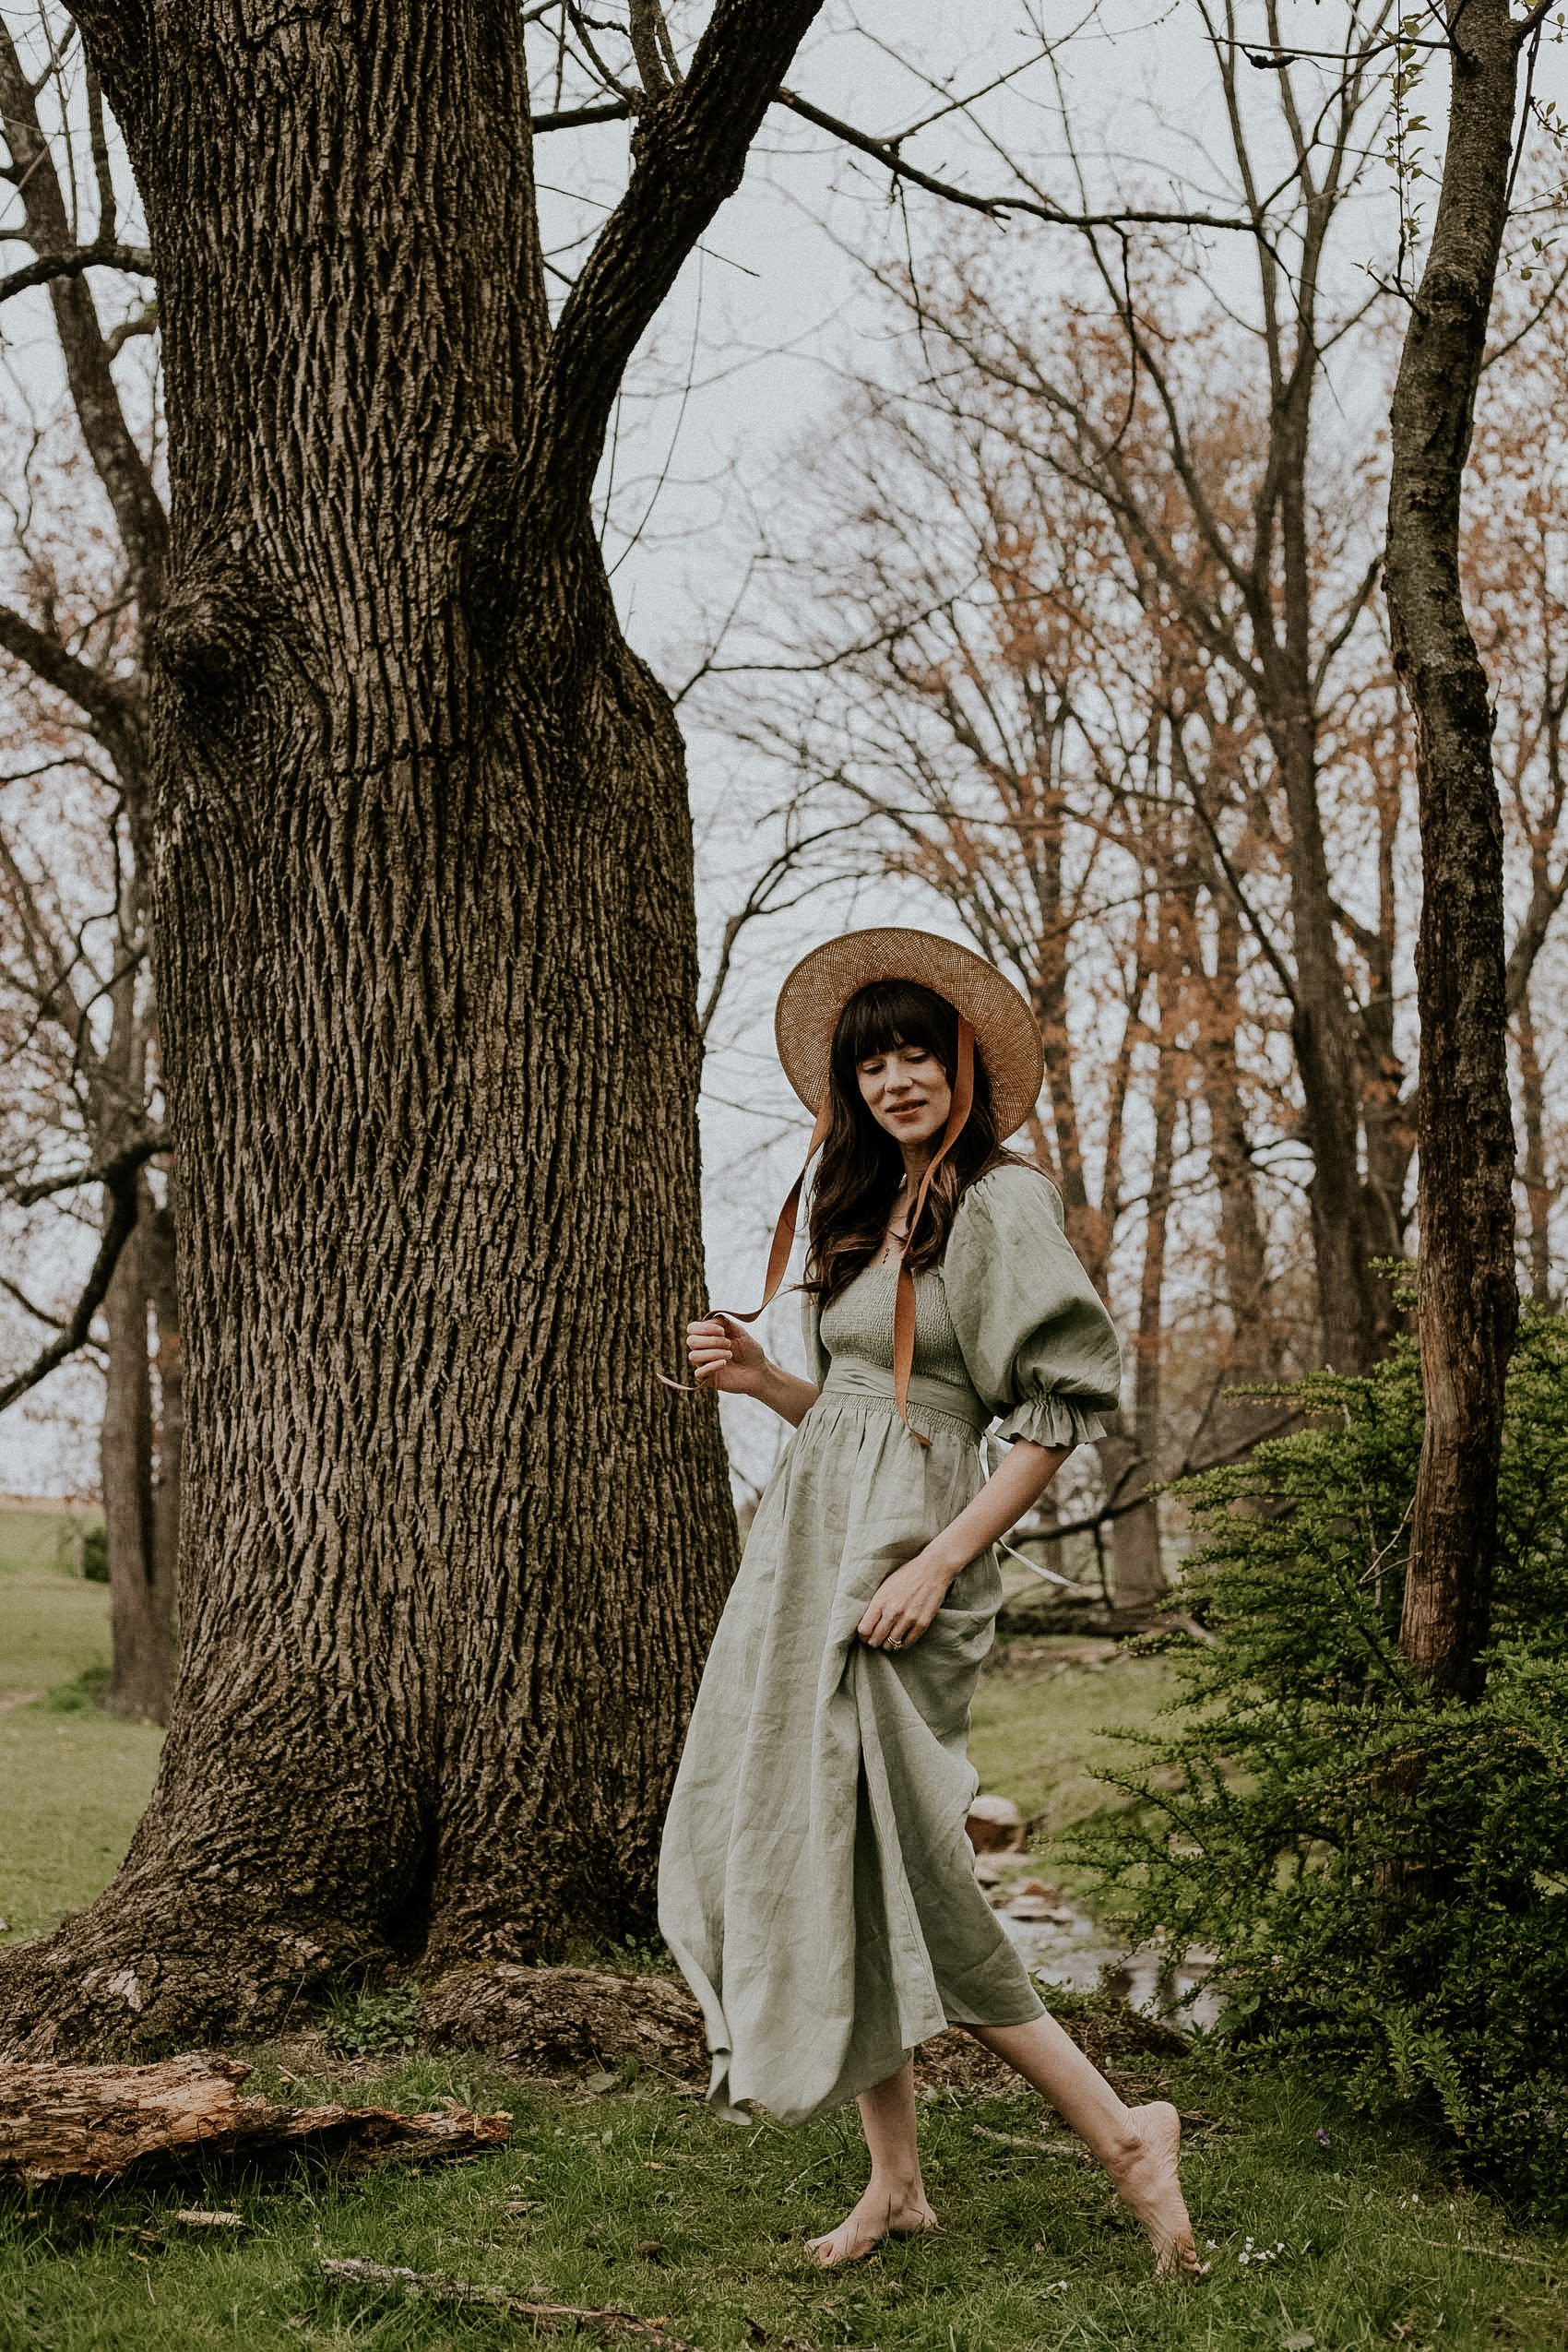 Aulieude Smocked Linen Dress with puff sleeve and straw hat on woman in the woods